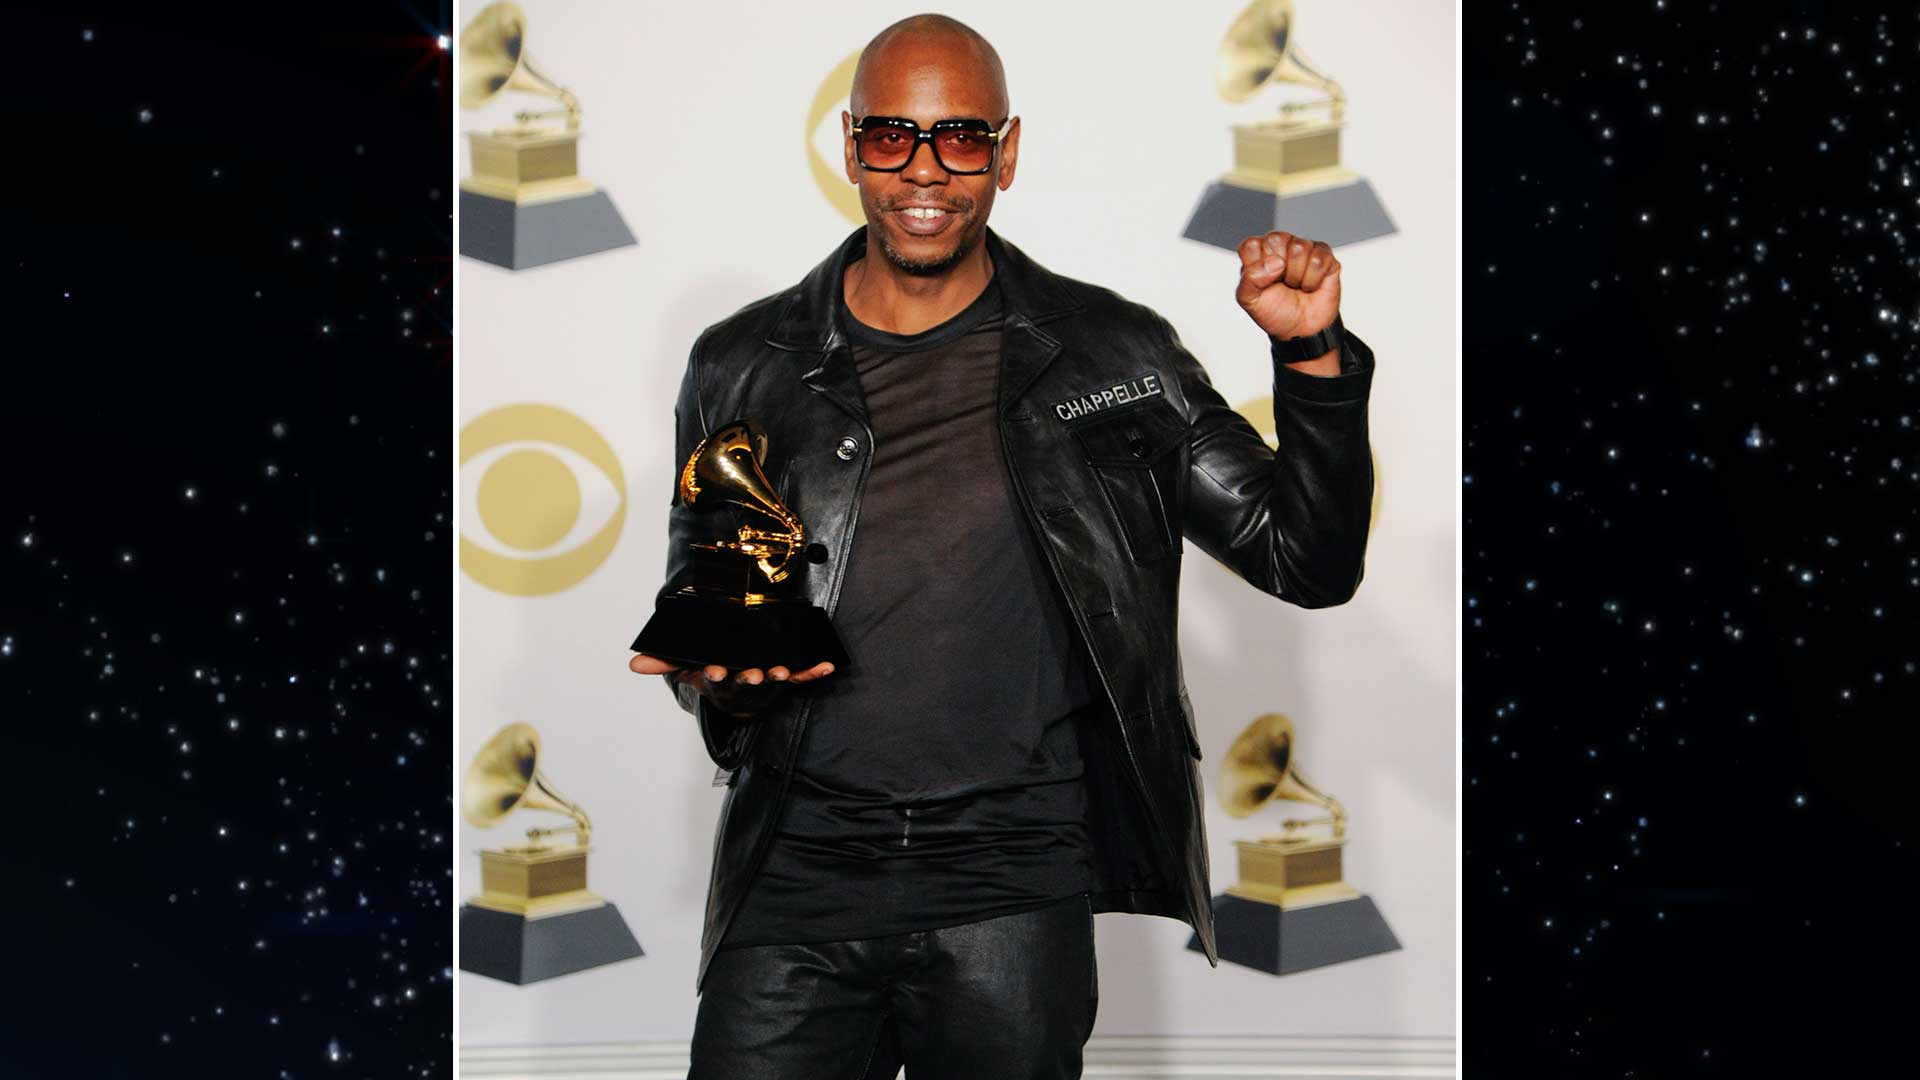 Comedian and Best Comedy Album winner Dave Chapelle throws a triumphant fist in the air.